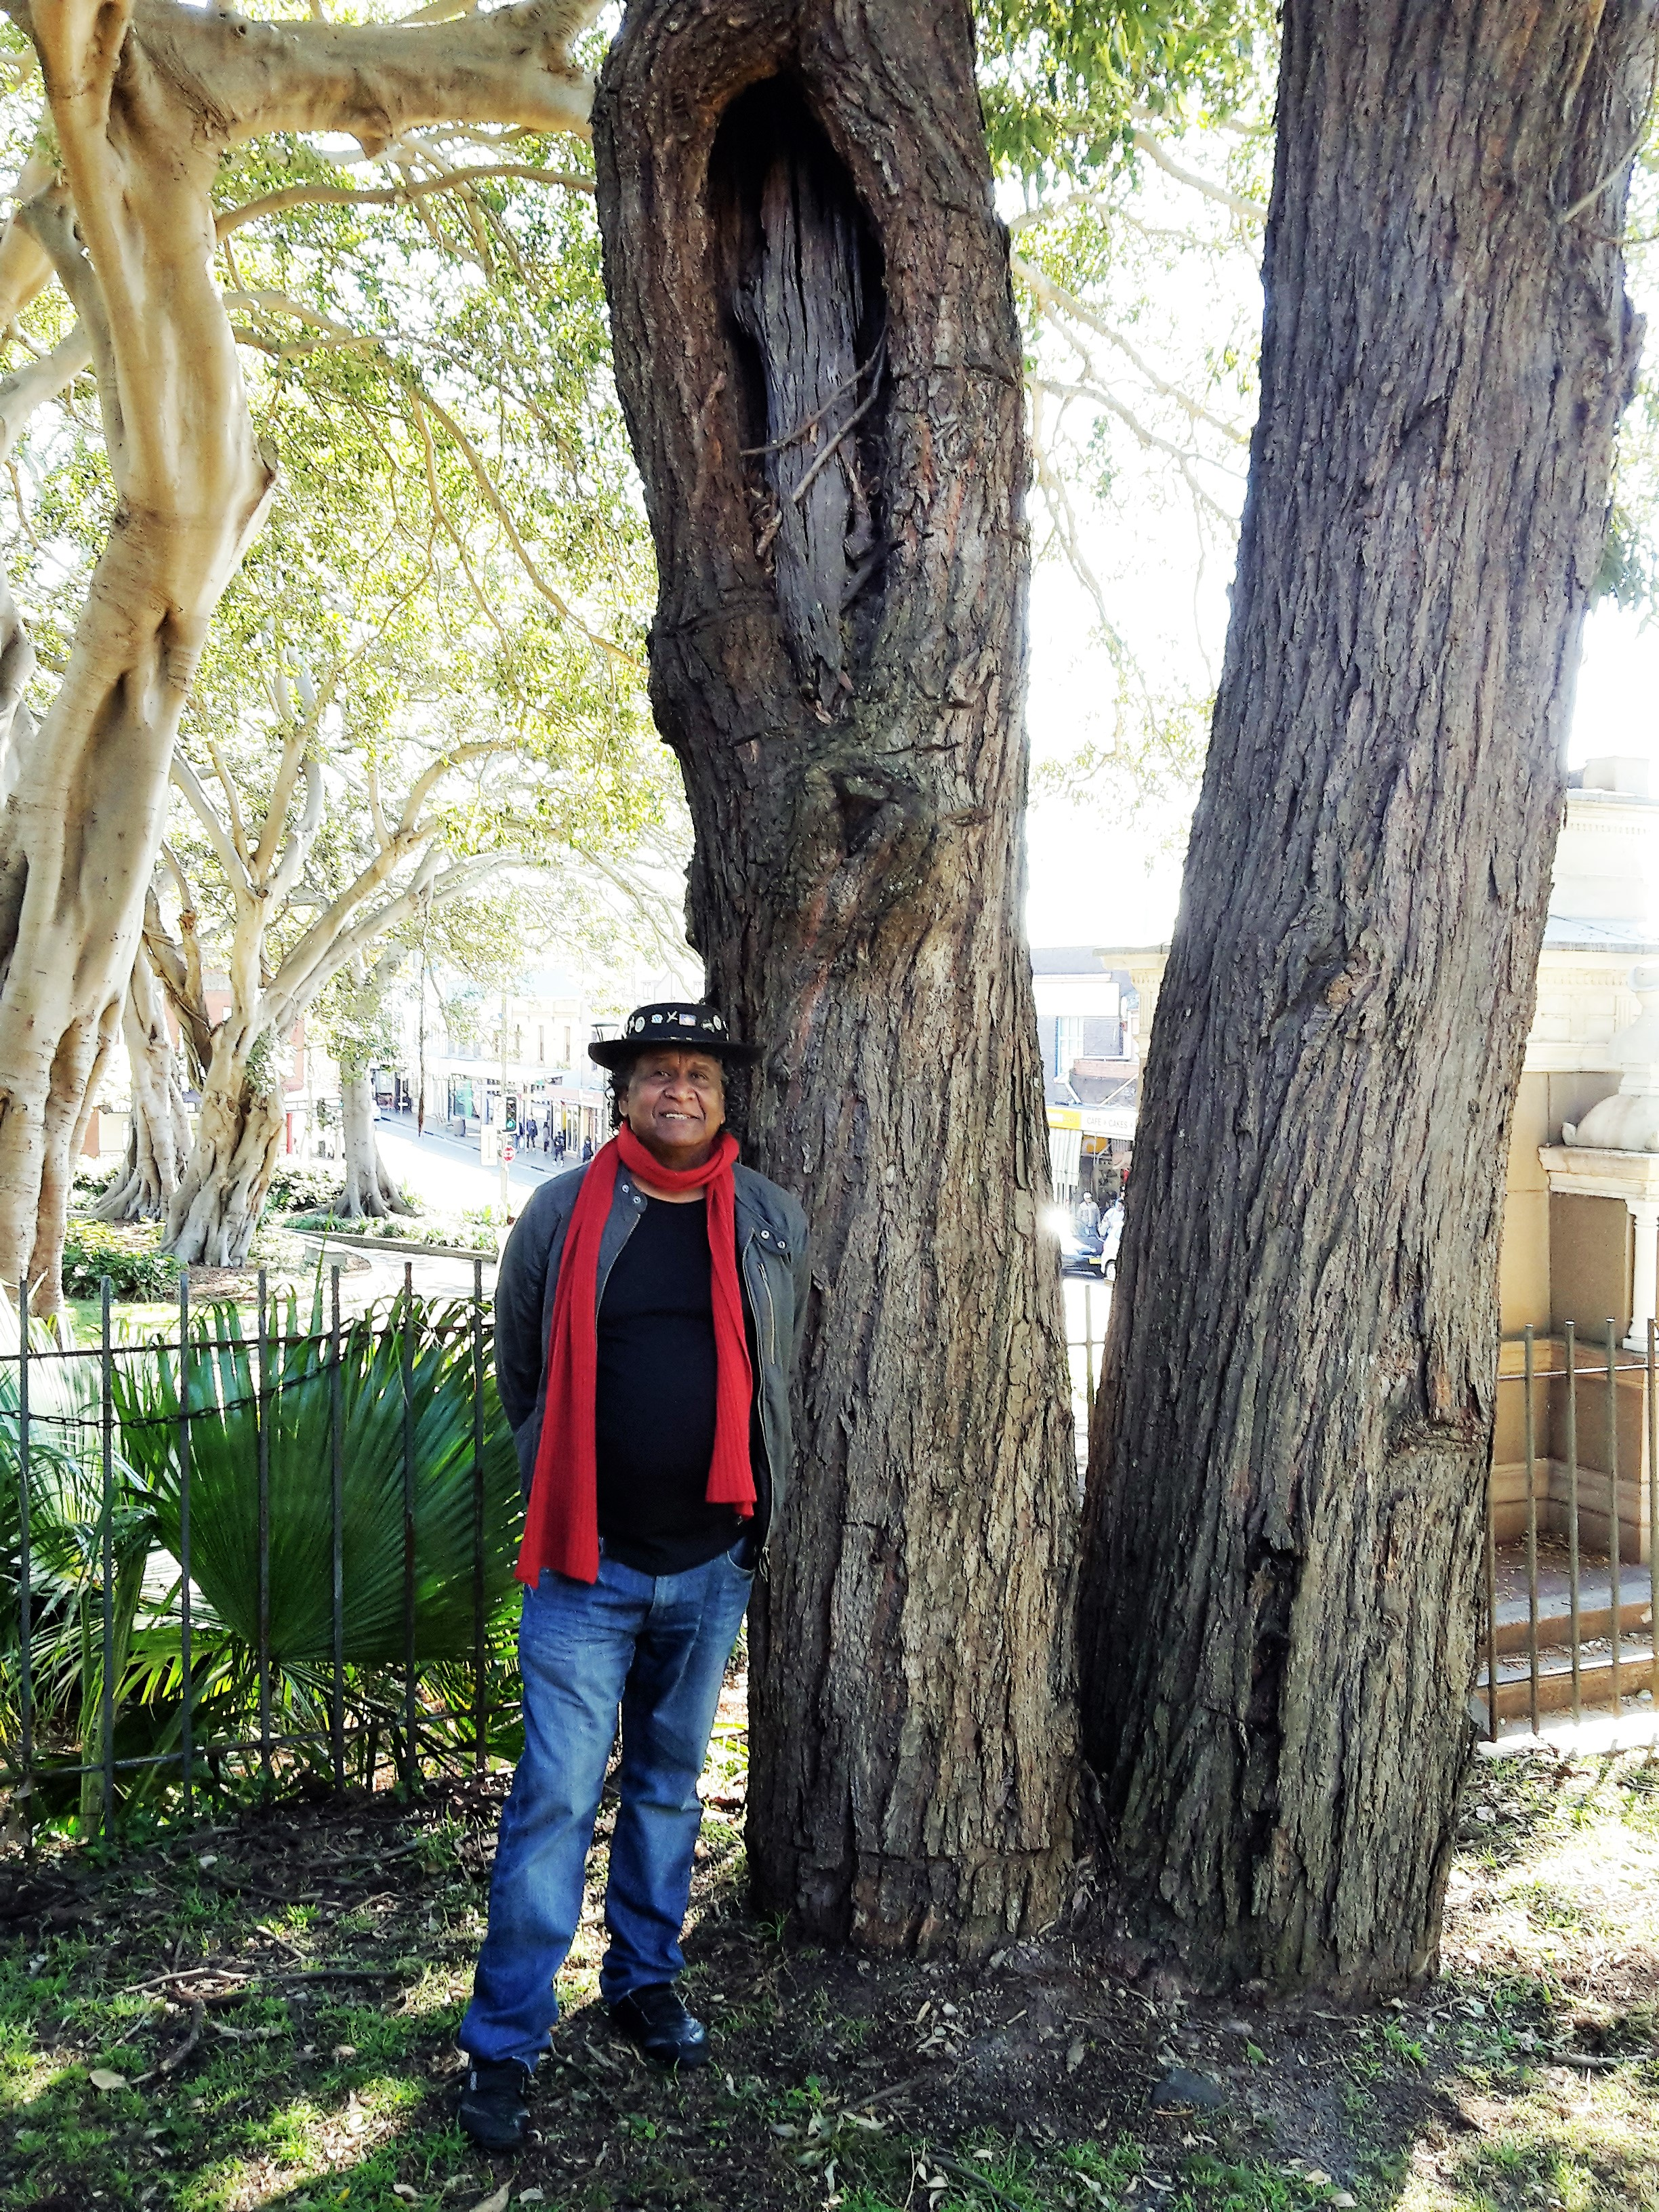 Ray Minniecon from the Babana Aboriginal Men's Group and the scarred tree ministries, pictured with the tree in Glebe.